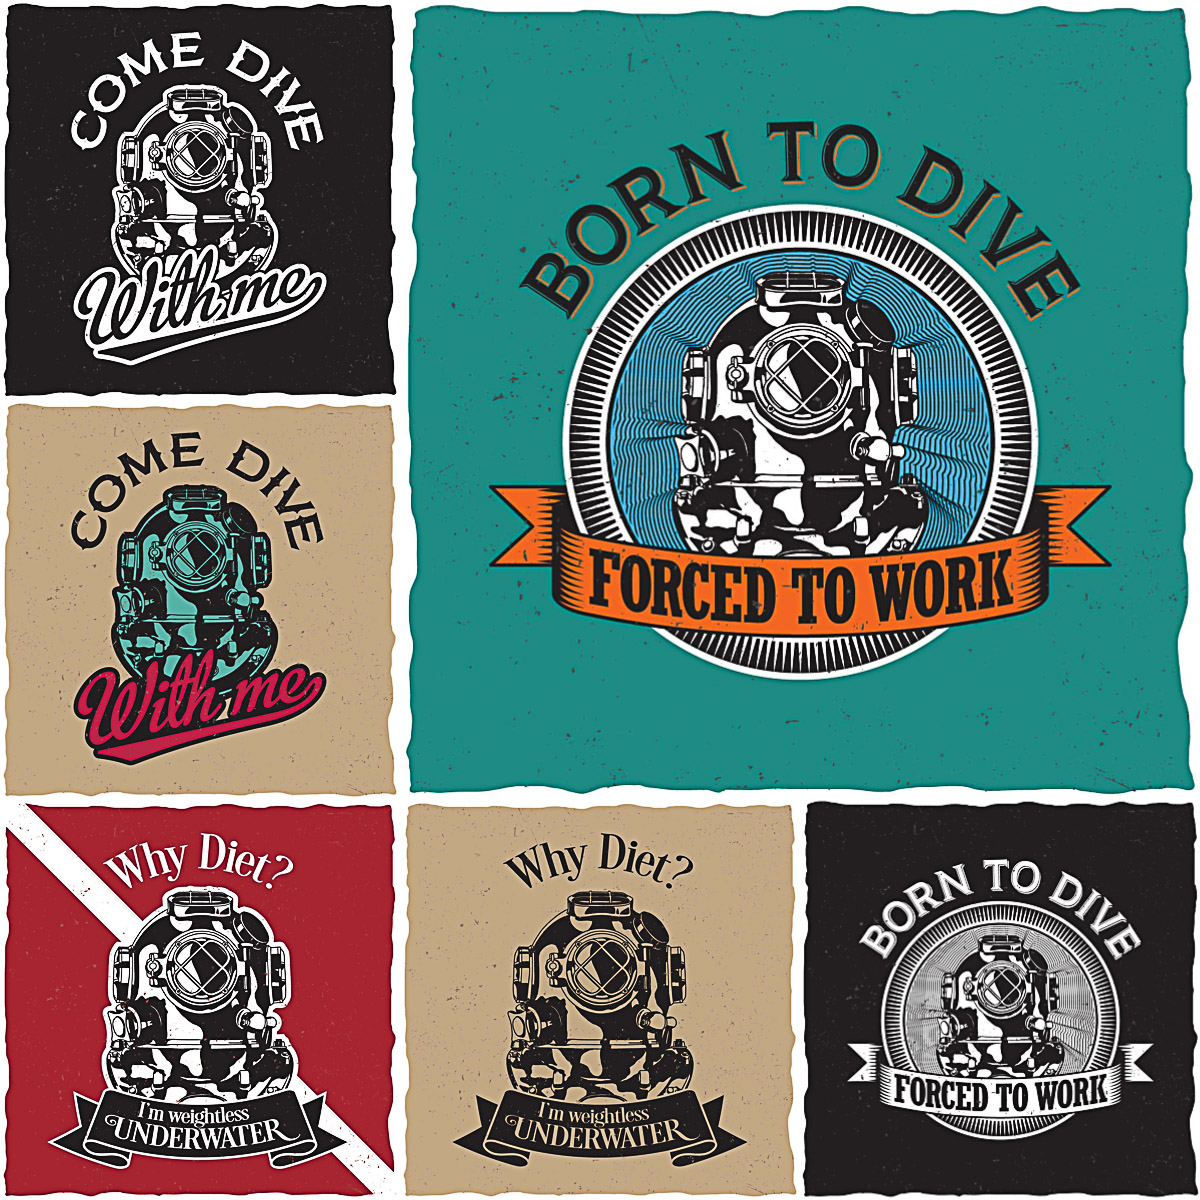 Diver t shirt labels design print free download for T shirt printing design software